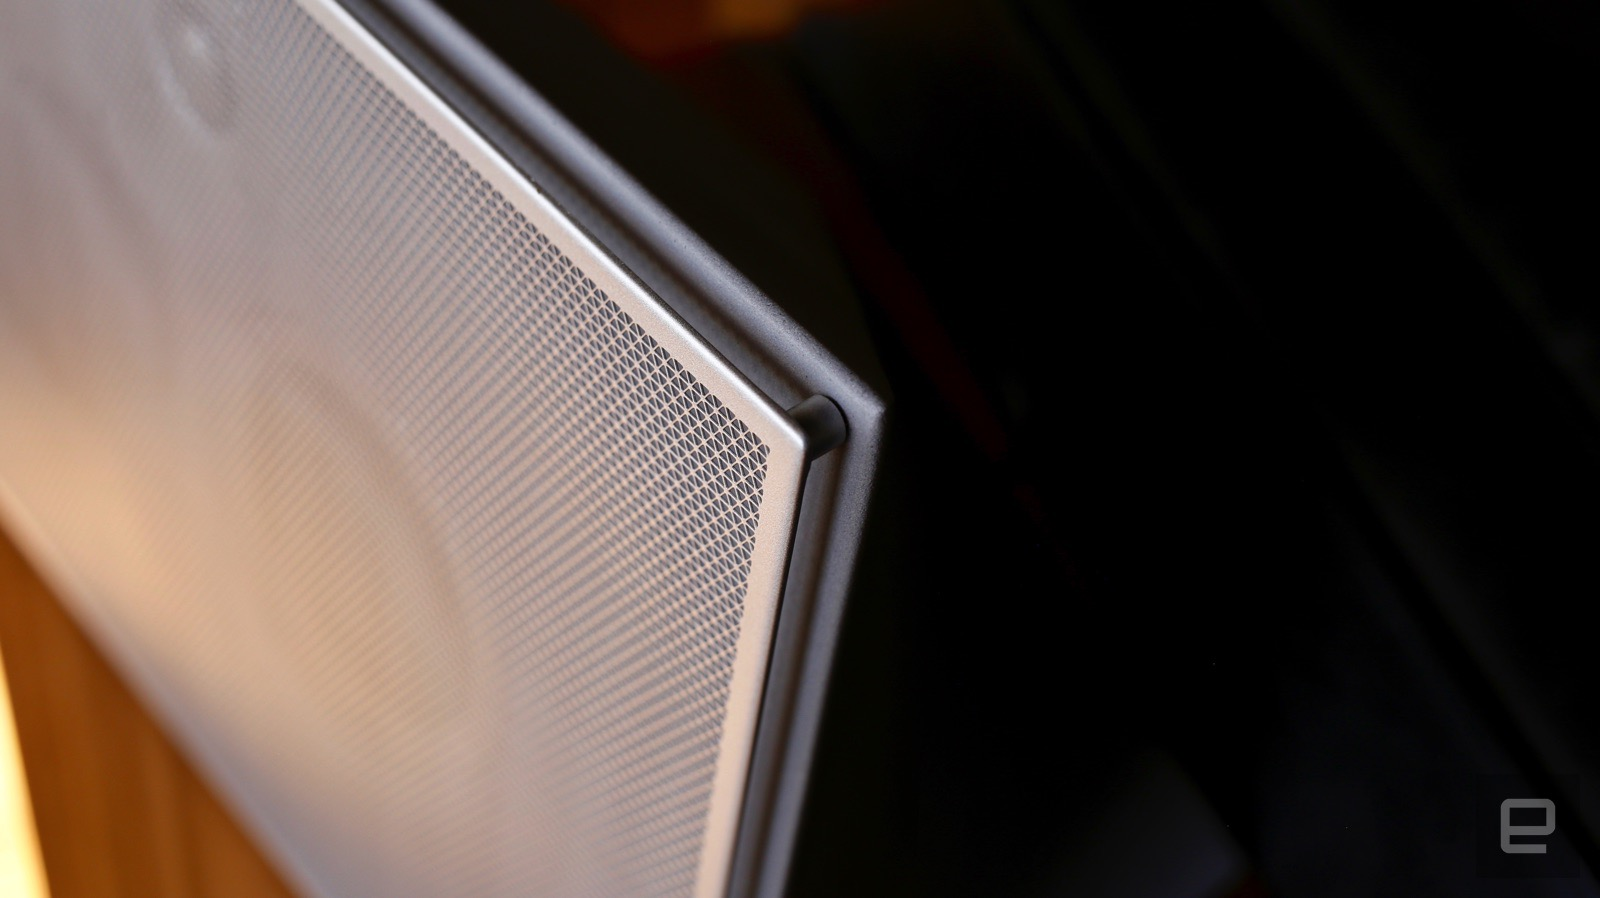 Master & Dynamic's concrete speaker is equal parts sound and